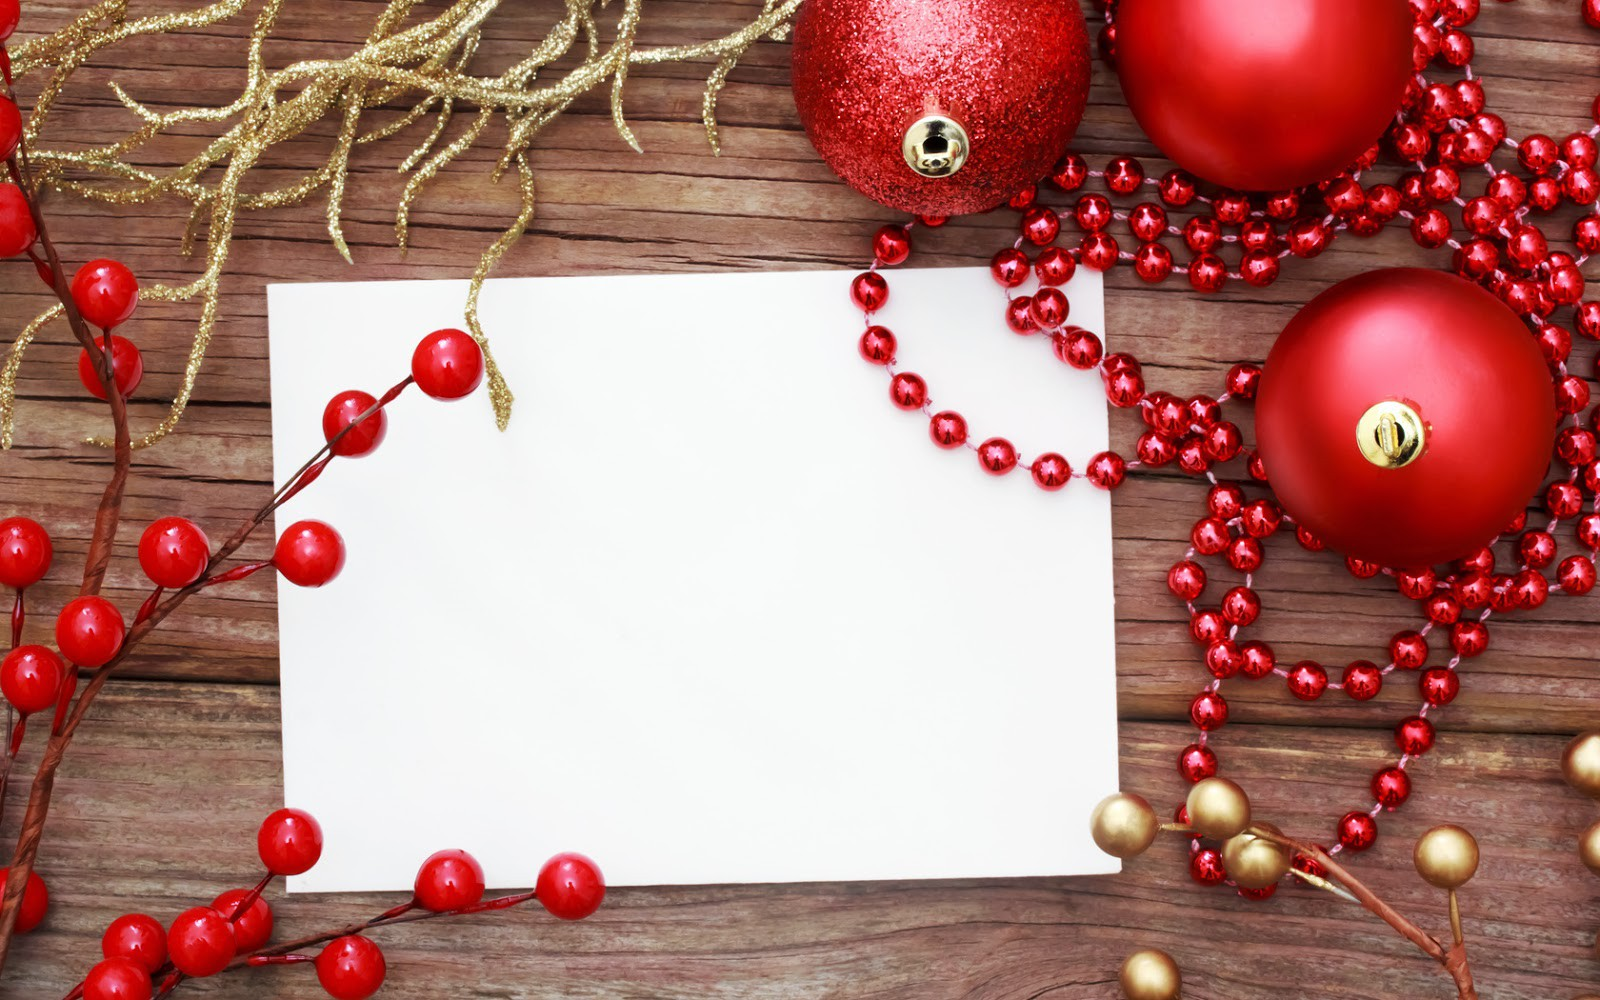 ... christmas-wallpapers-quotes-wishes-word-background wallpaper for powerpoint presentation ...